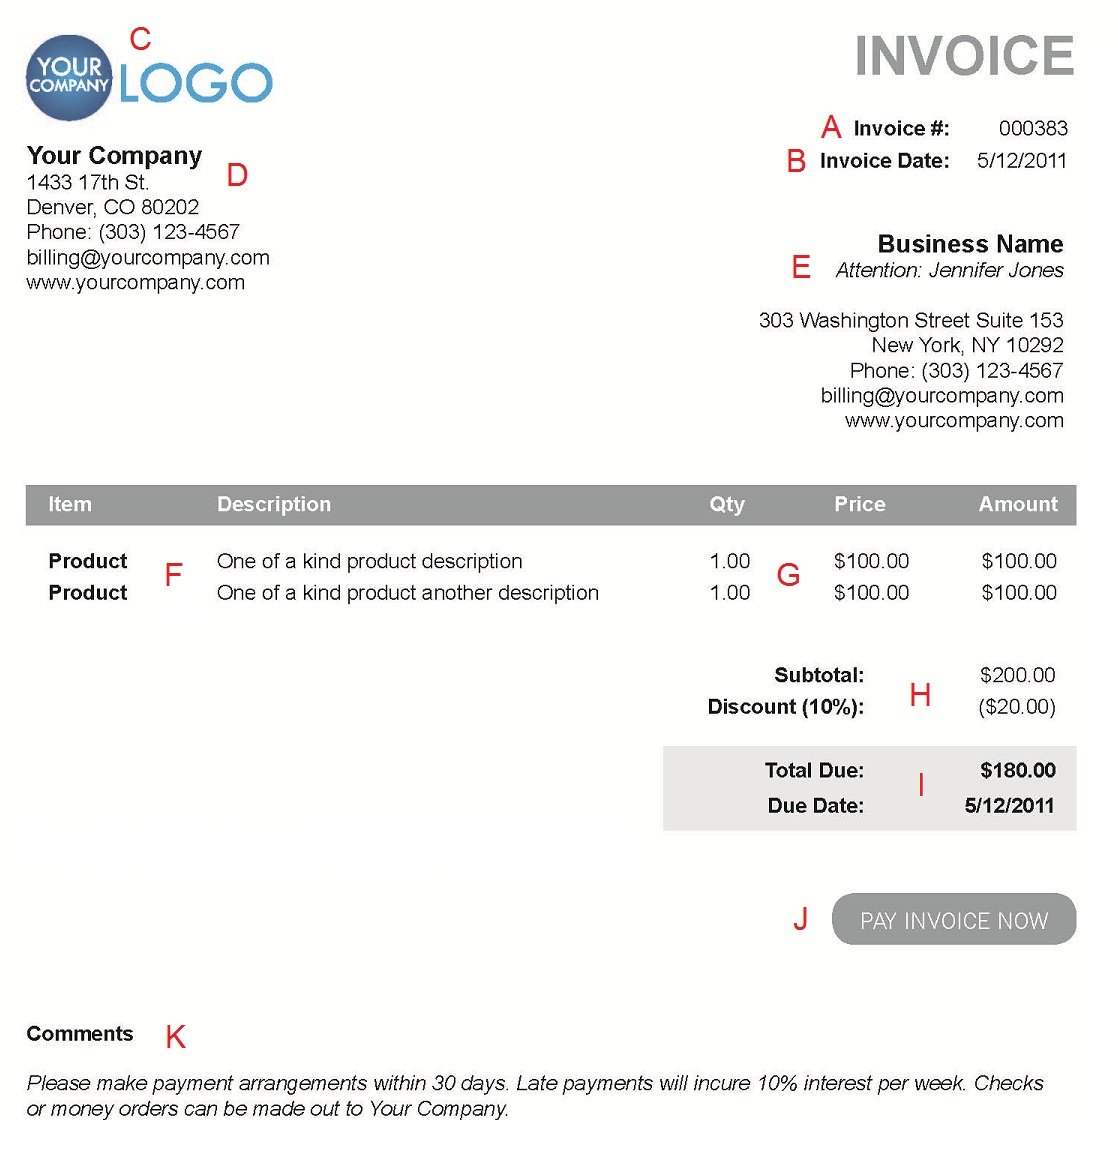 Hucareus  Winsome The  Different Sections Of An Electronic Payment Invoice With Interesting A  With Endearing Excise Invoice Format Also Professional Invoice Templates In Addition How To Create A Invoice Template In Excel And Find Invoice Price Of New Car By Vin As Well As Tax Invoice Example Additionally Sales Invoice Template Uk From Paysimplecom With Hucareus  Interesting The  Different Sections Of An Electronic Payment Invoice With Endearing A  And Winsome Excise Invoice Format Also Professional Invoice Templates In Addition How To Create A Invoice Template In Excel From Paysimplecom